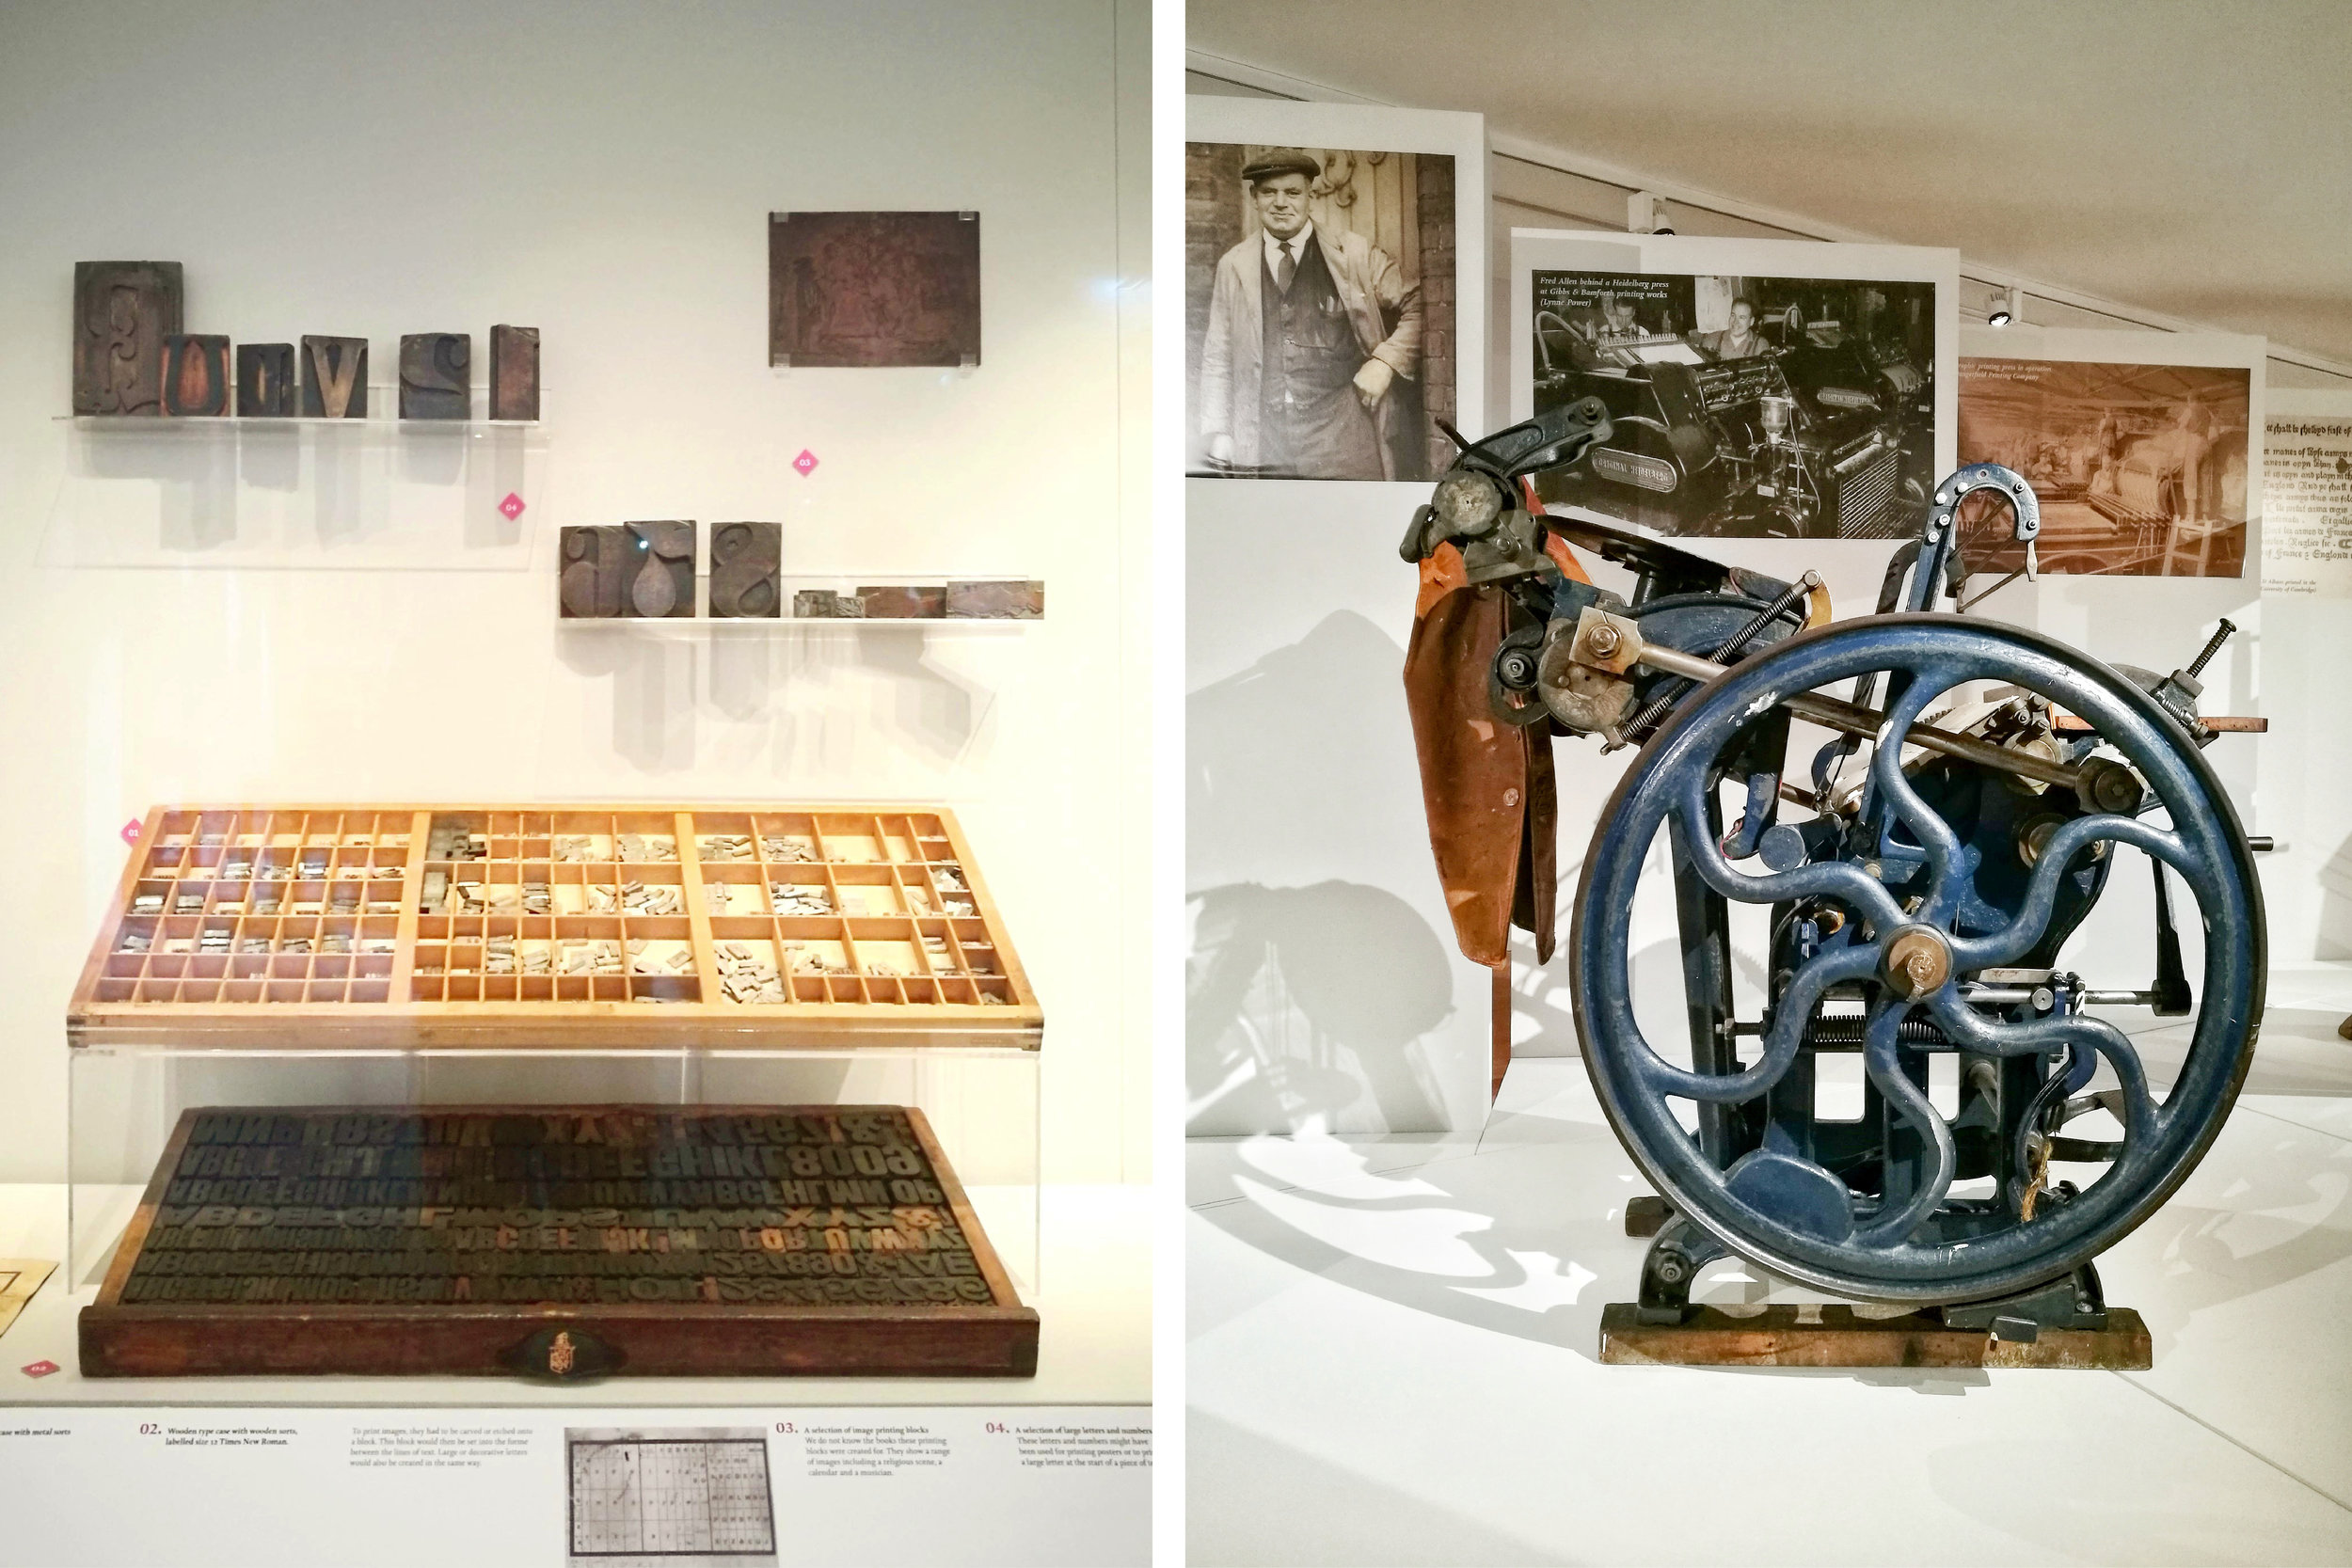 Photograph of Printing Presses in First Impressions Exhibition at St Albans Museum and Gallery